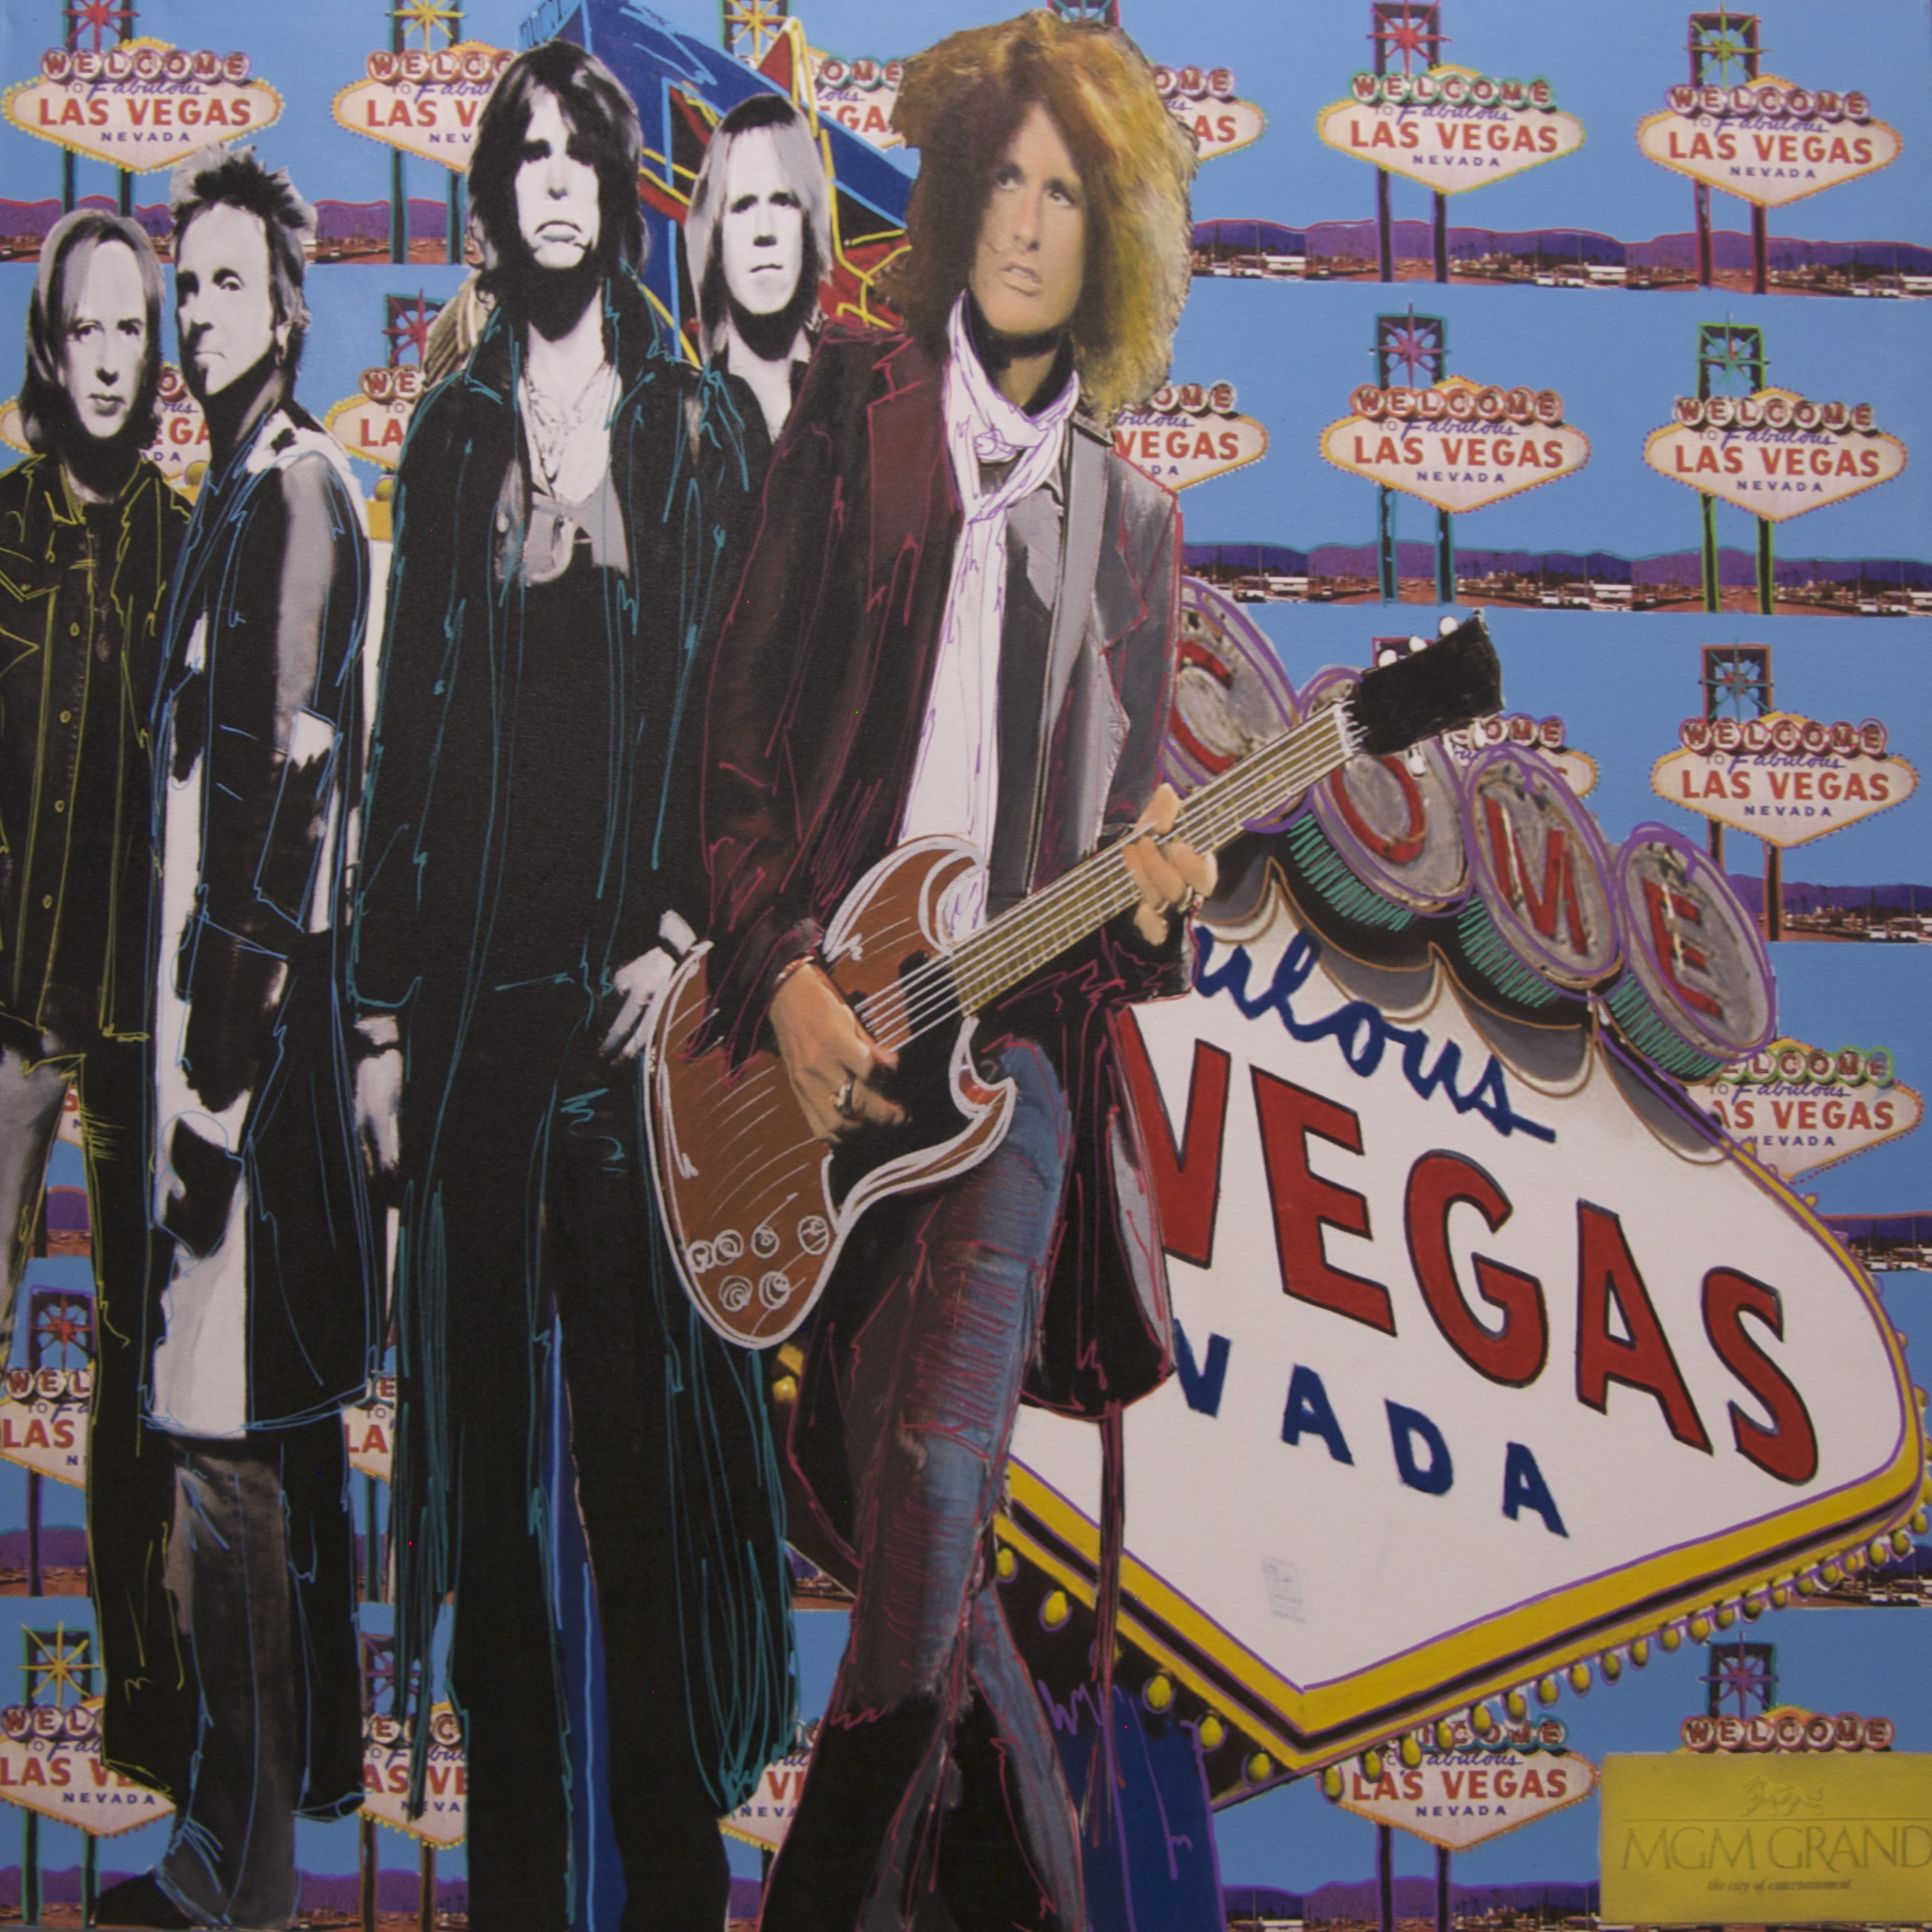 Aerosmith at the MGM Grand – Las Vegas